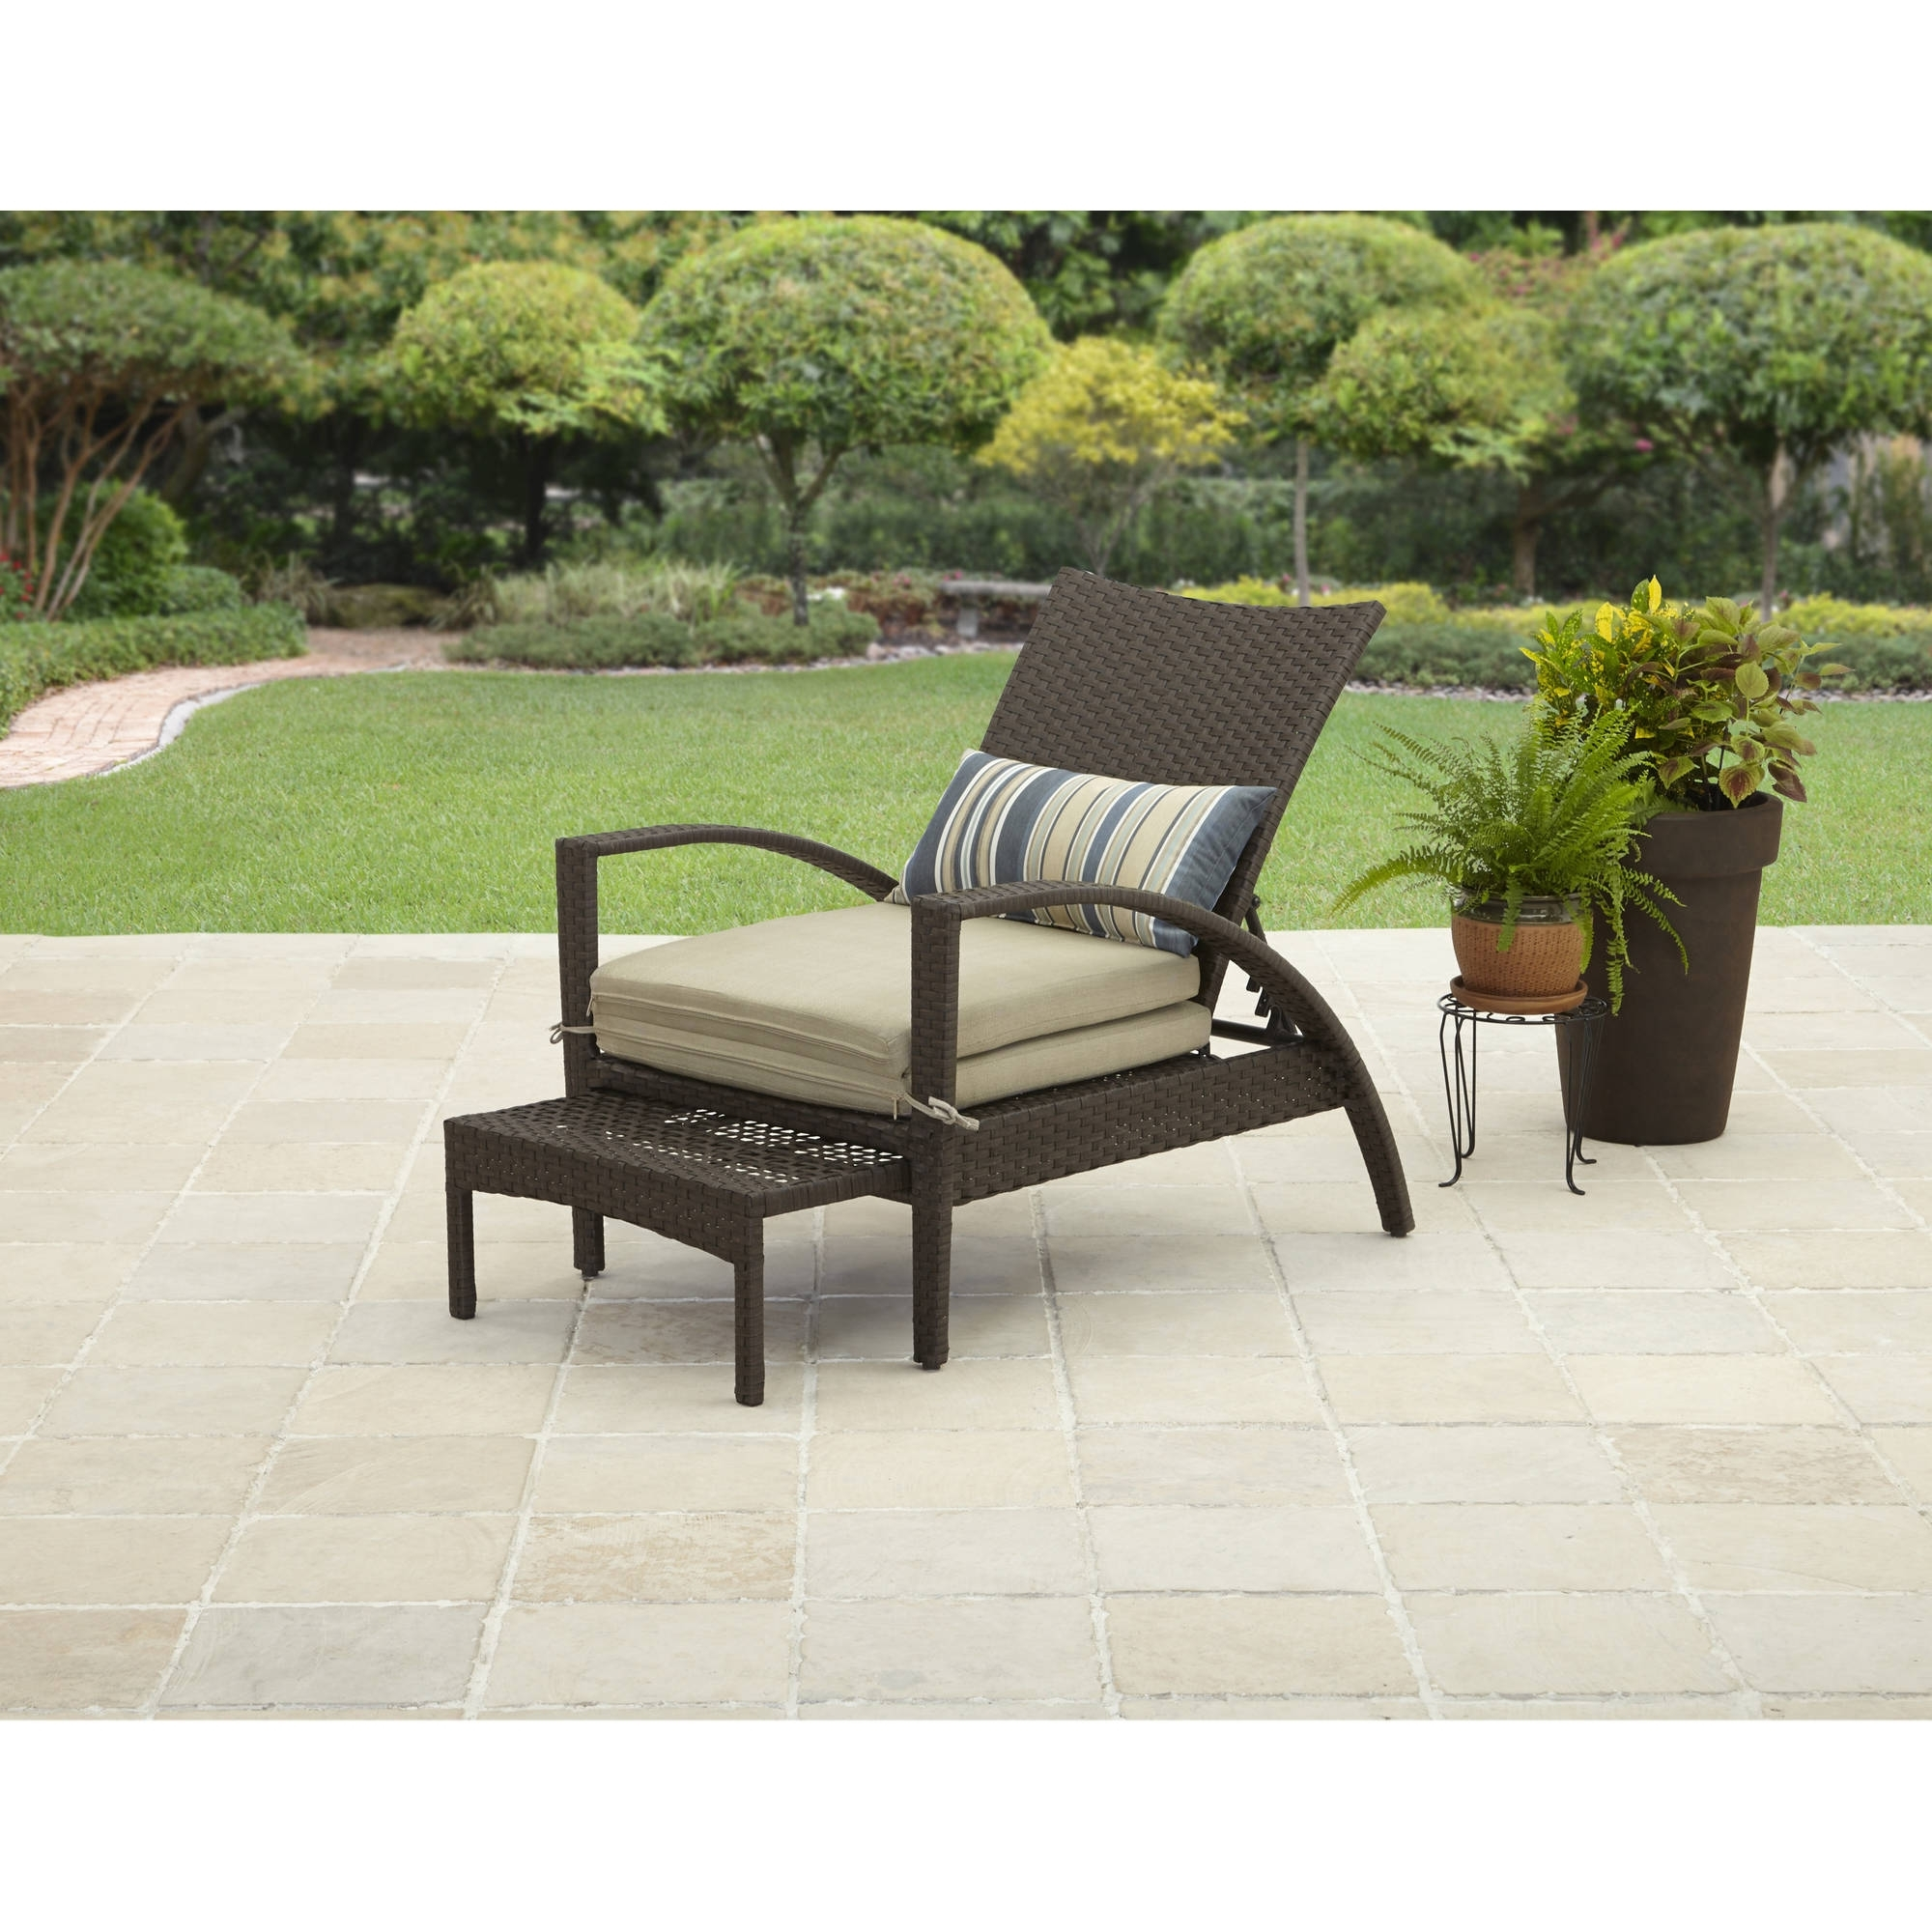 Preferred Better Homes And Gardens Avila Beach Pull Out Chaise – Walmart With Regard To Walmart Outdoor Chaise Lounges (View 9 of 15)